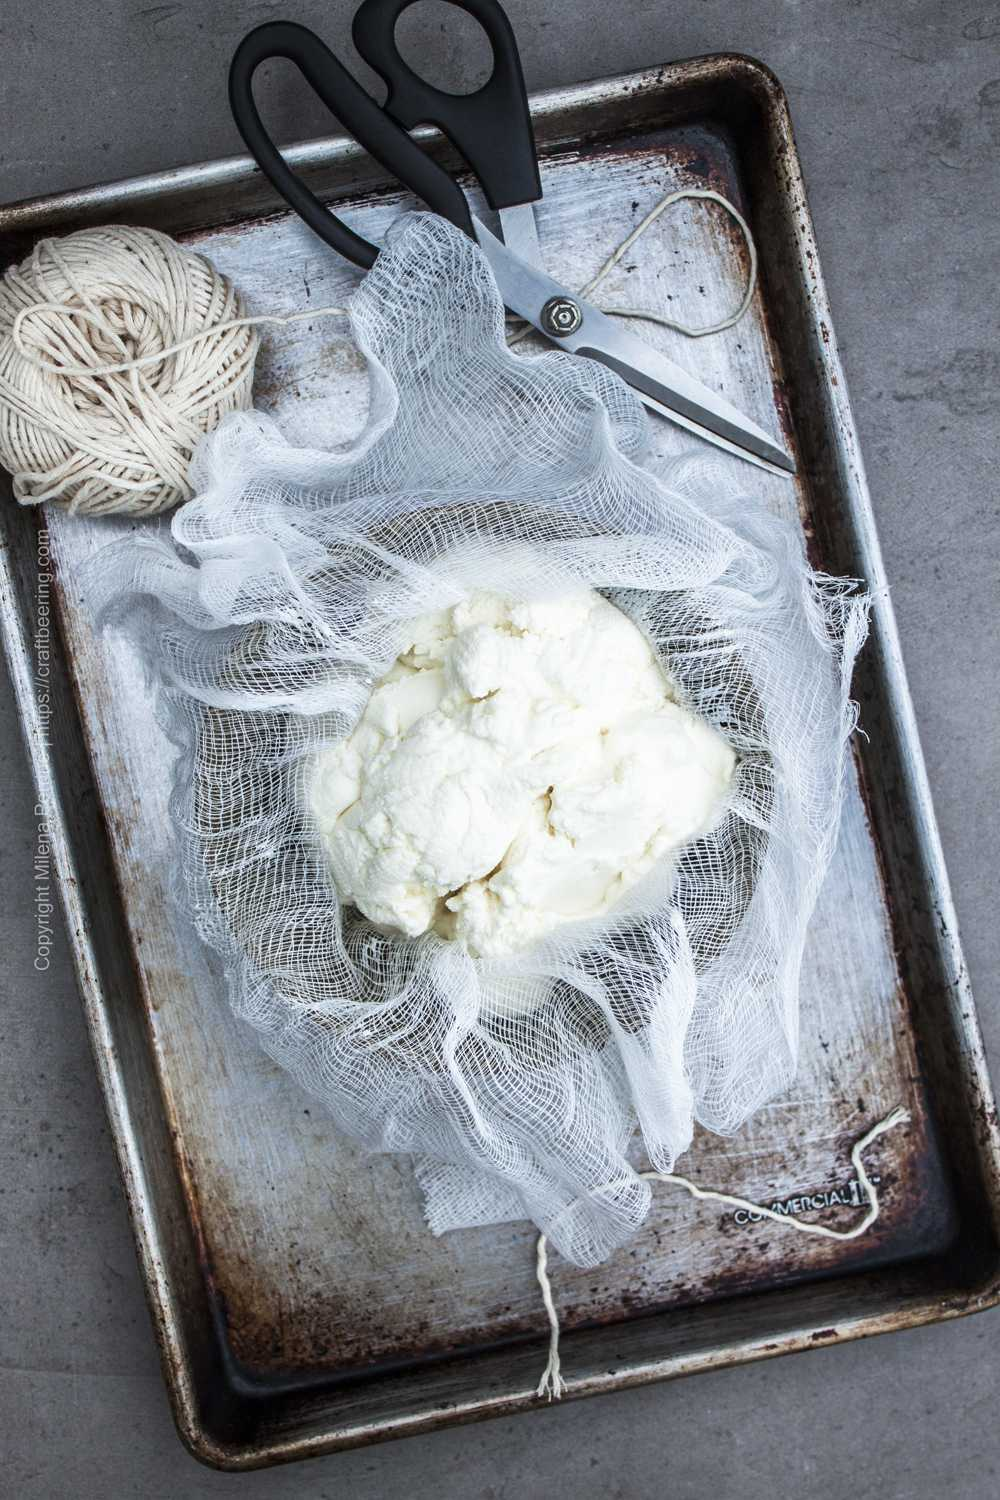 Fresh ricotta, cheesecloth, butcher's twine and other items needed for smoked ricotta.